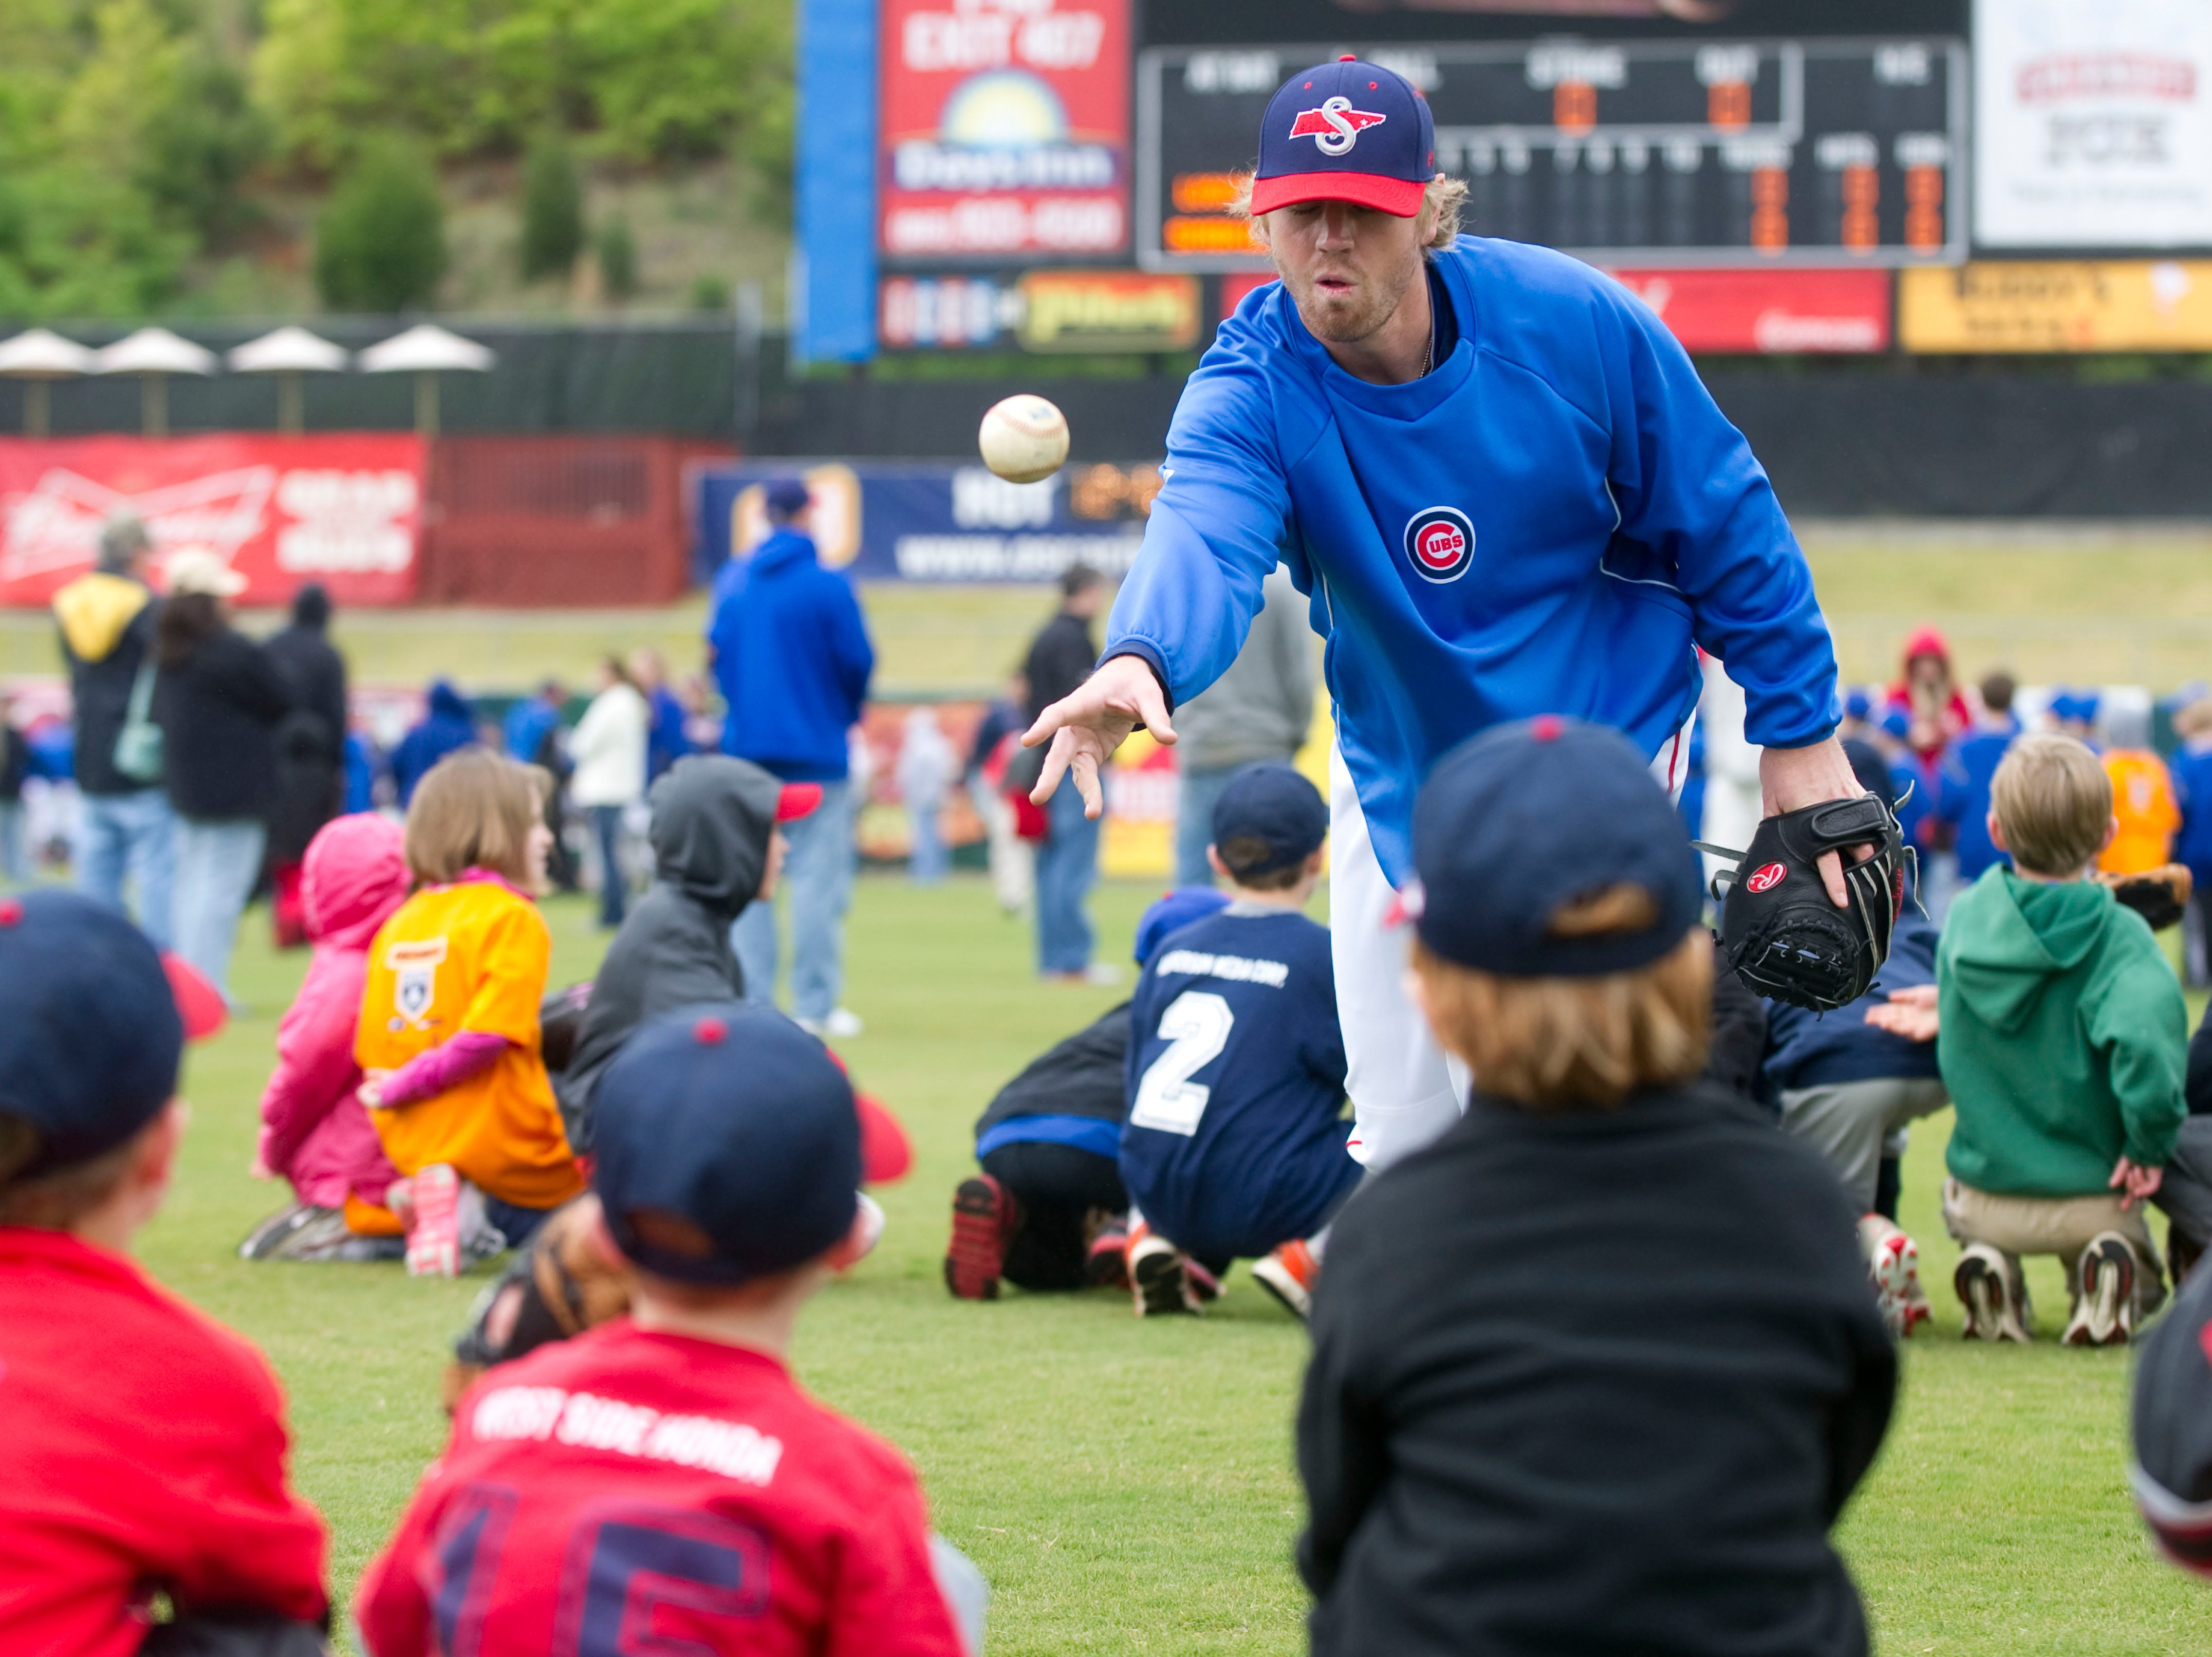 Tennessee Smokies catcher Mike Brenly works with kids during the team's annual Little League Clinic at Smokies Park on Sunday, April 22, 2012.